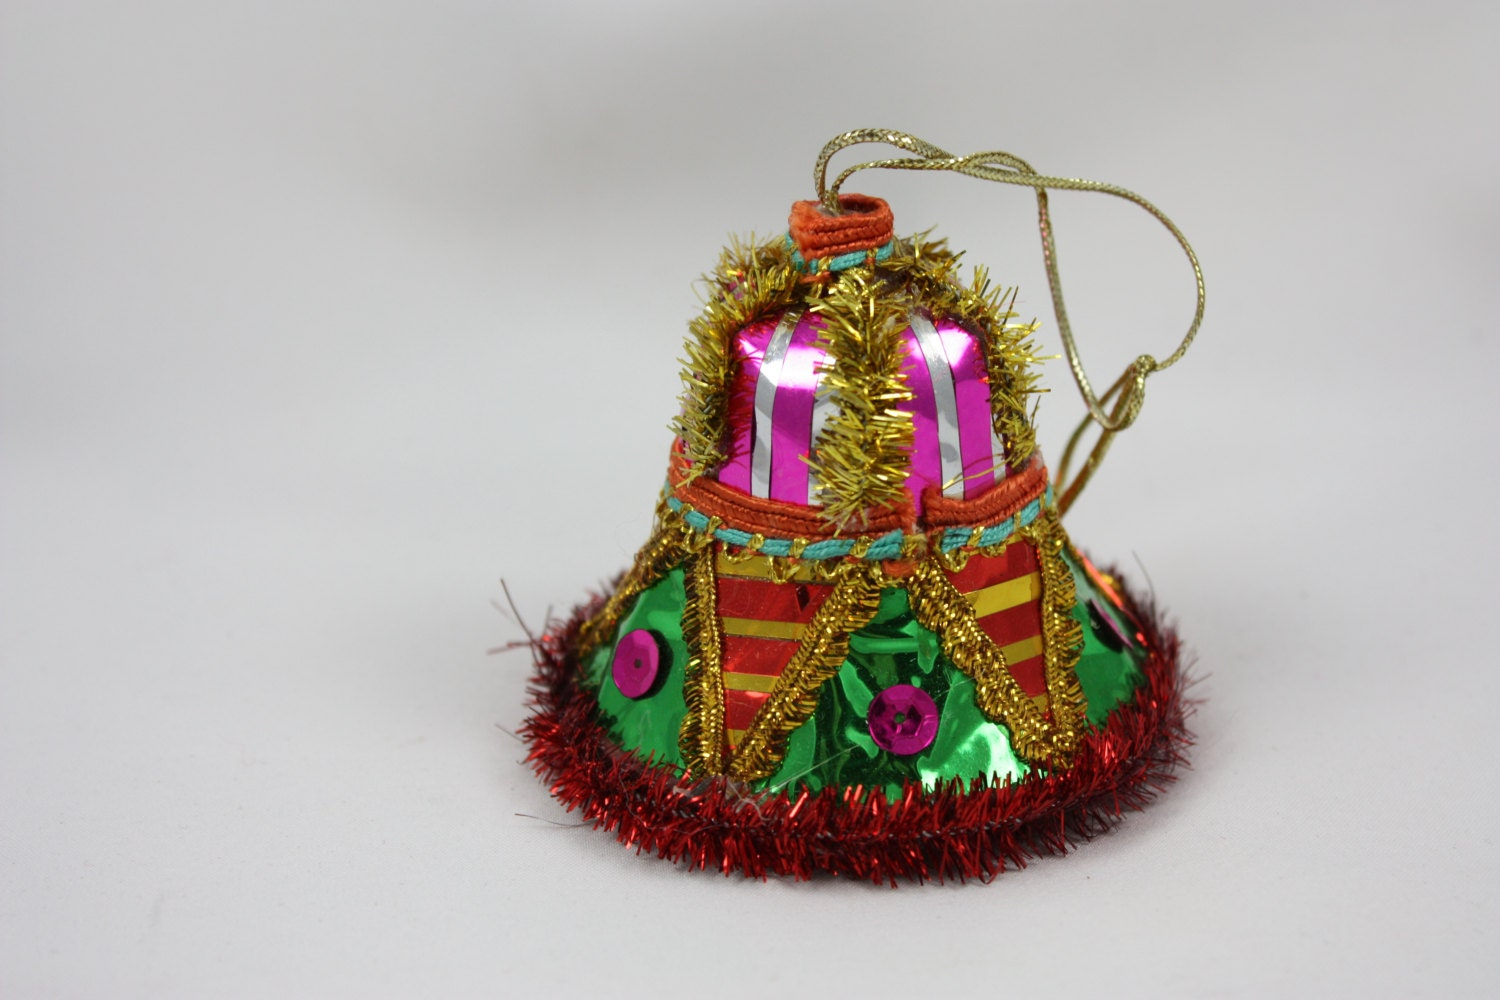 Festive vintage christmas bell ornament hand made bright